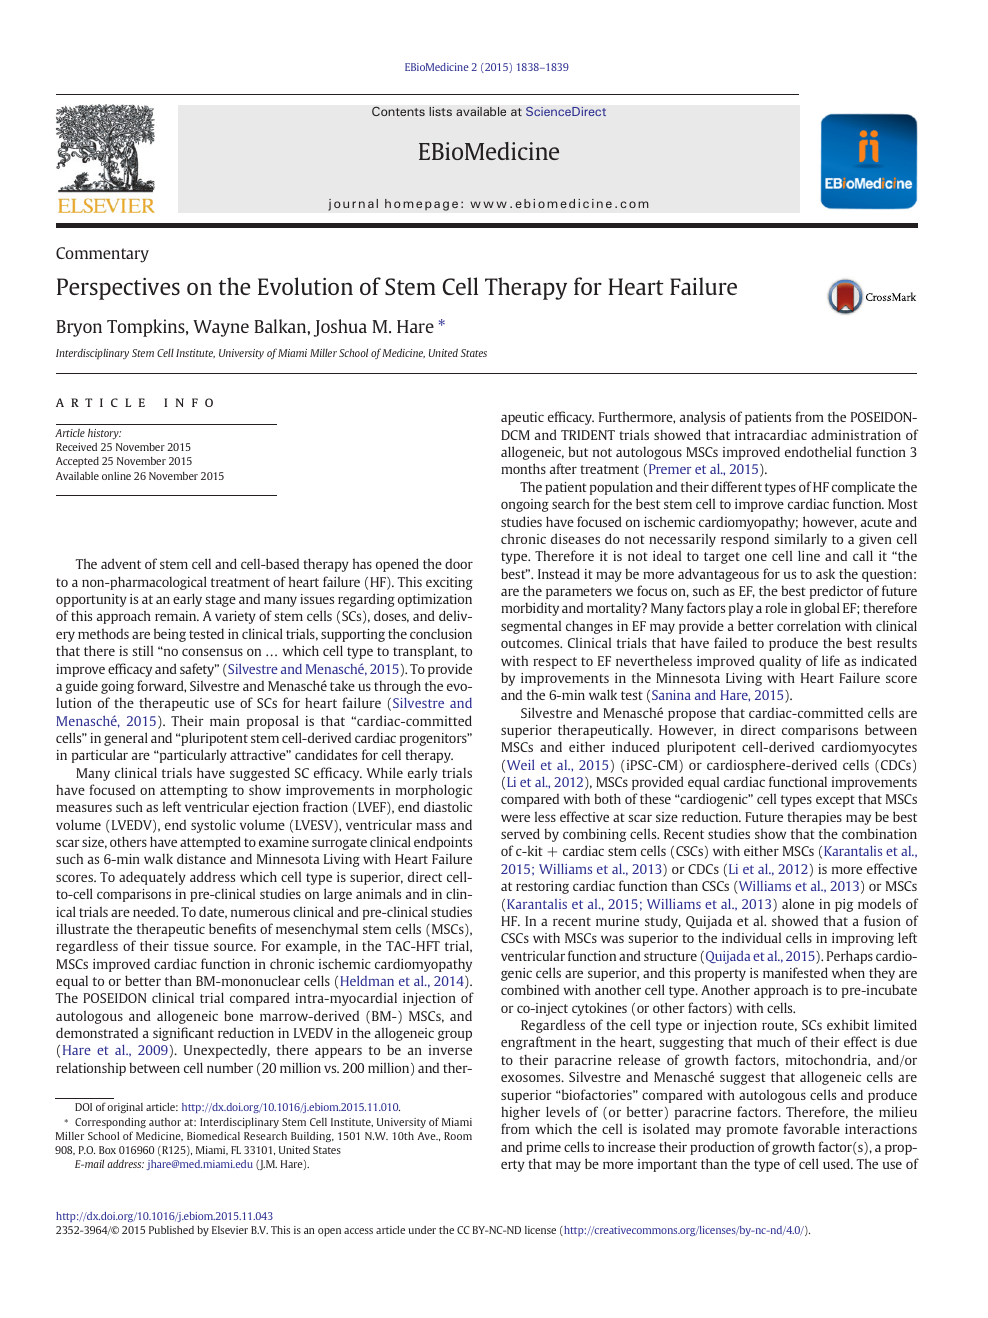 Perspectives on the Evolution of Stem Cell Therapy for Heart